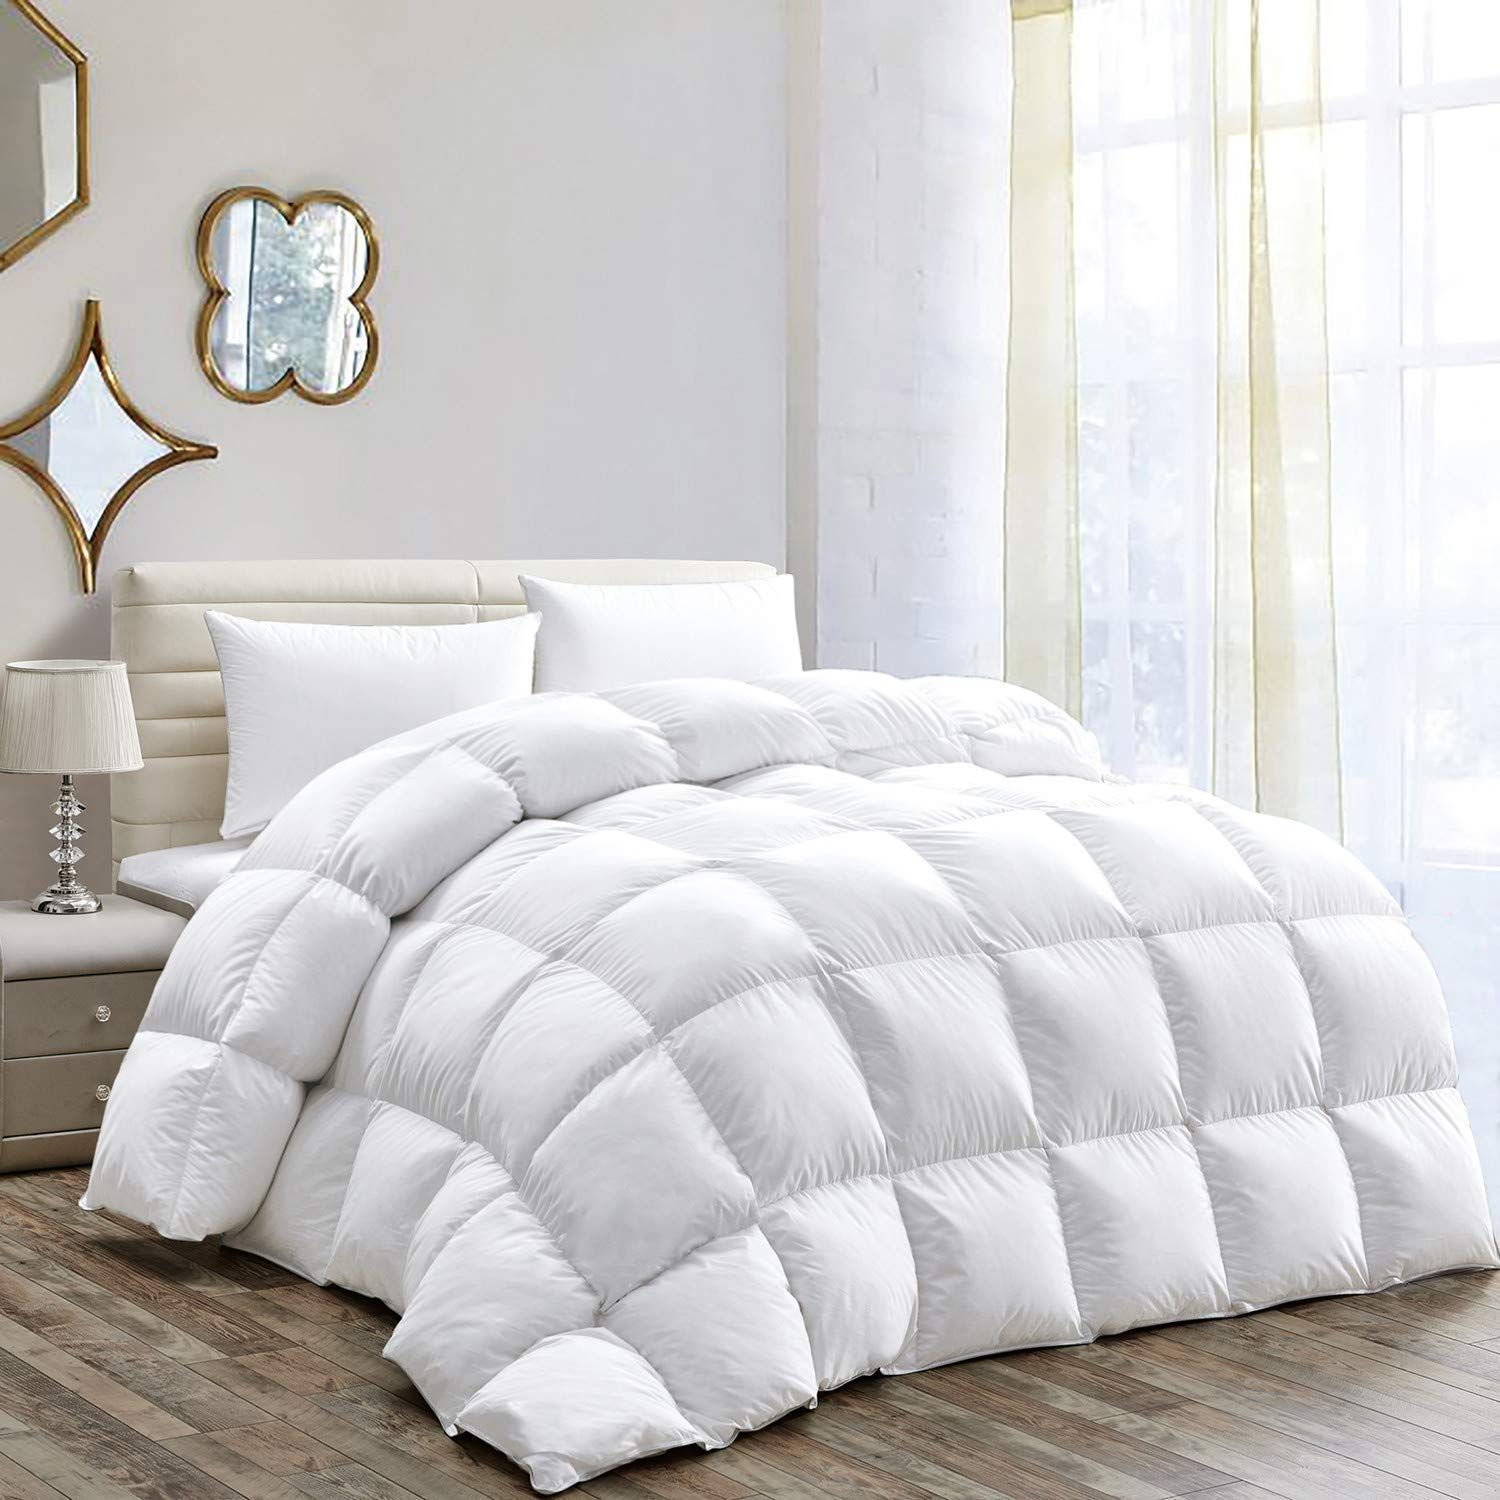 Hombys All Seasons Goose Down Comforter Queen Size Duvet Insert Feather In 2020 Queen Size Duvet Down Comforter Duvet Insert